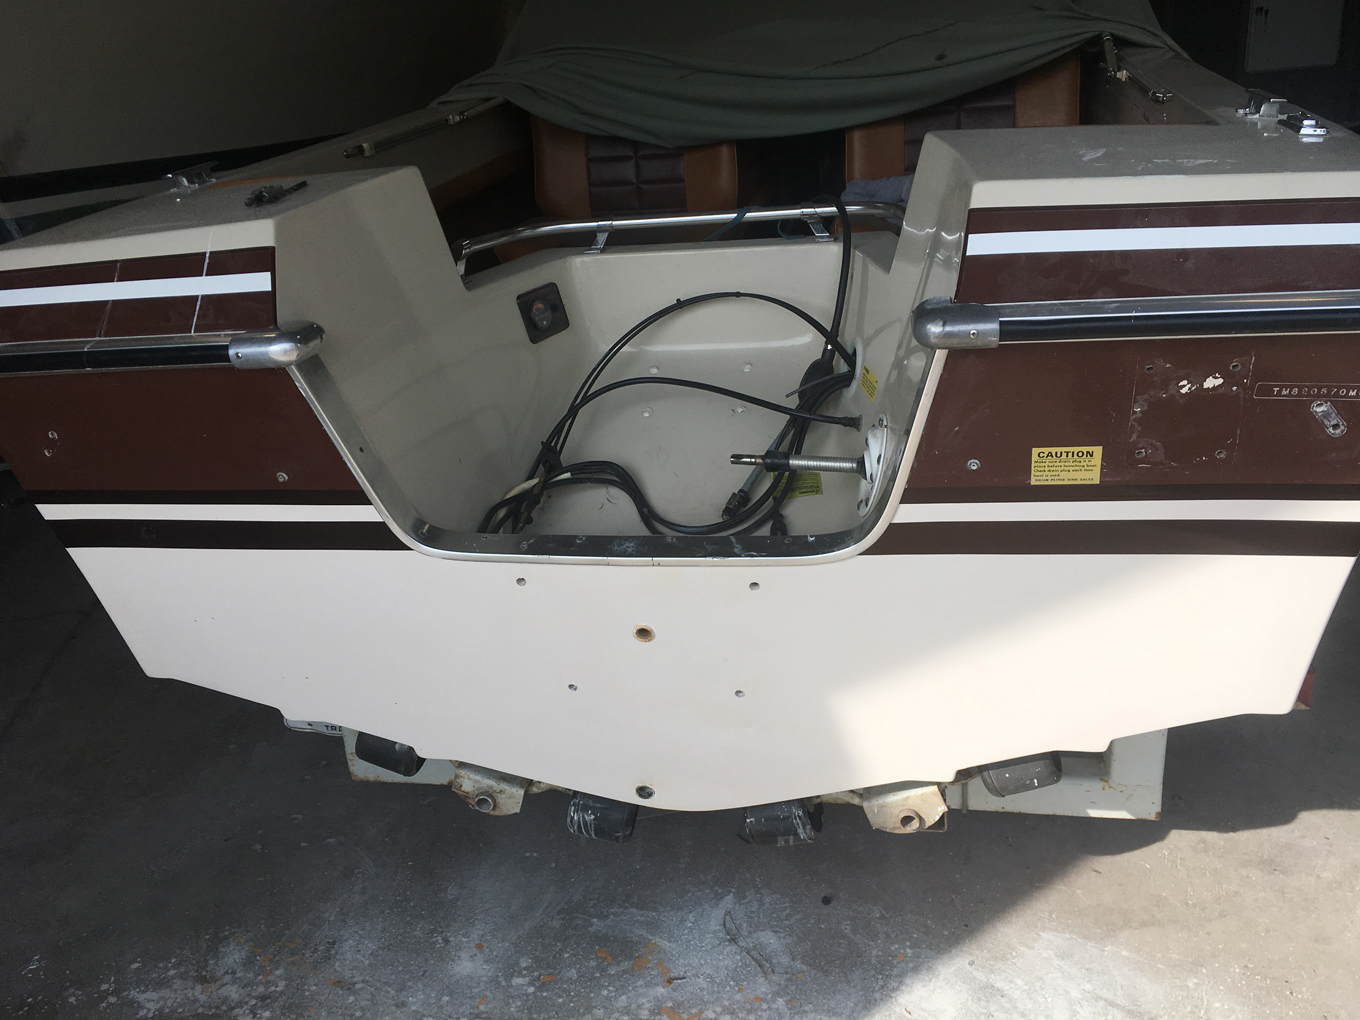 Transom after repairs.